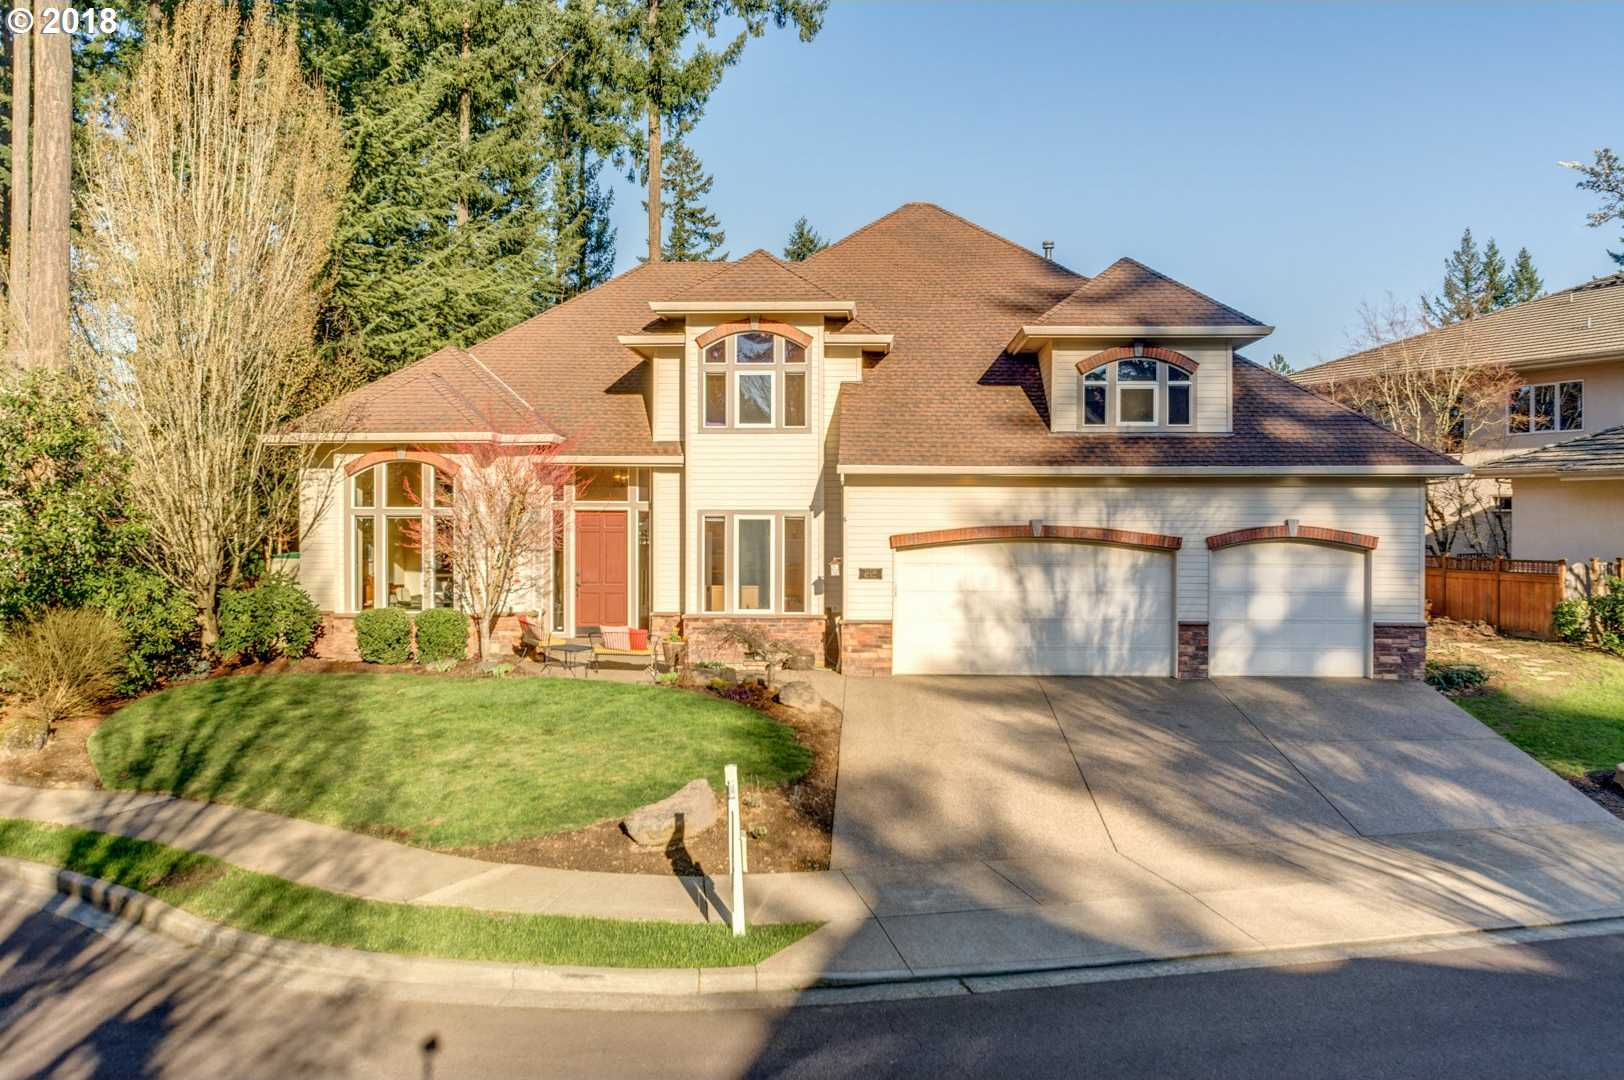 $685,000 - 4Br/3Ba -  for Sale in Victoria Woods, Tualatin